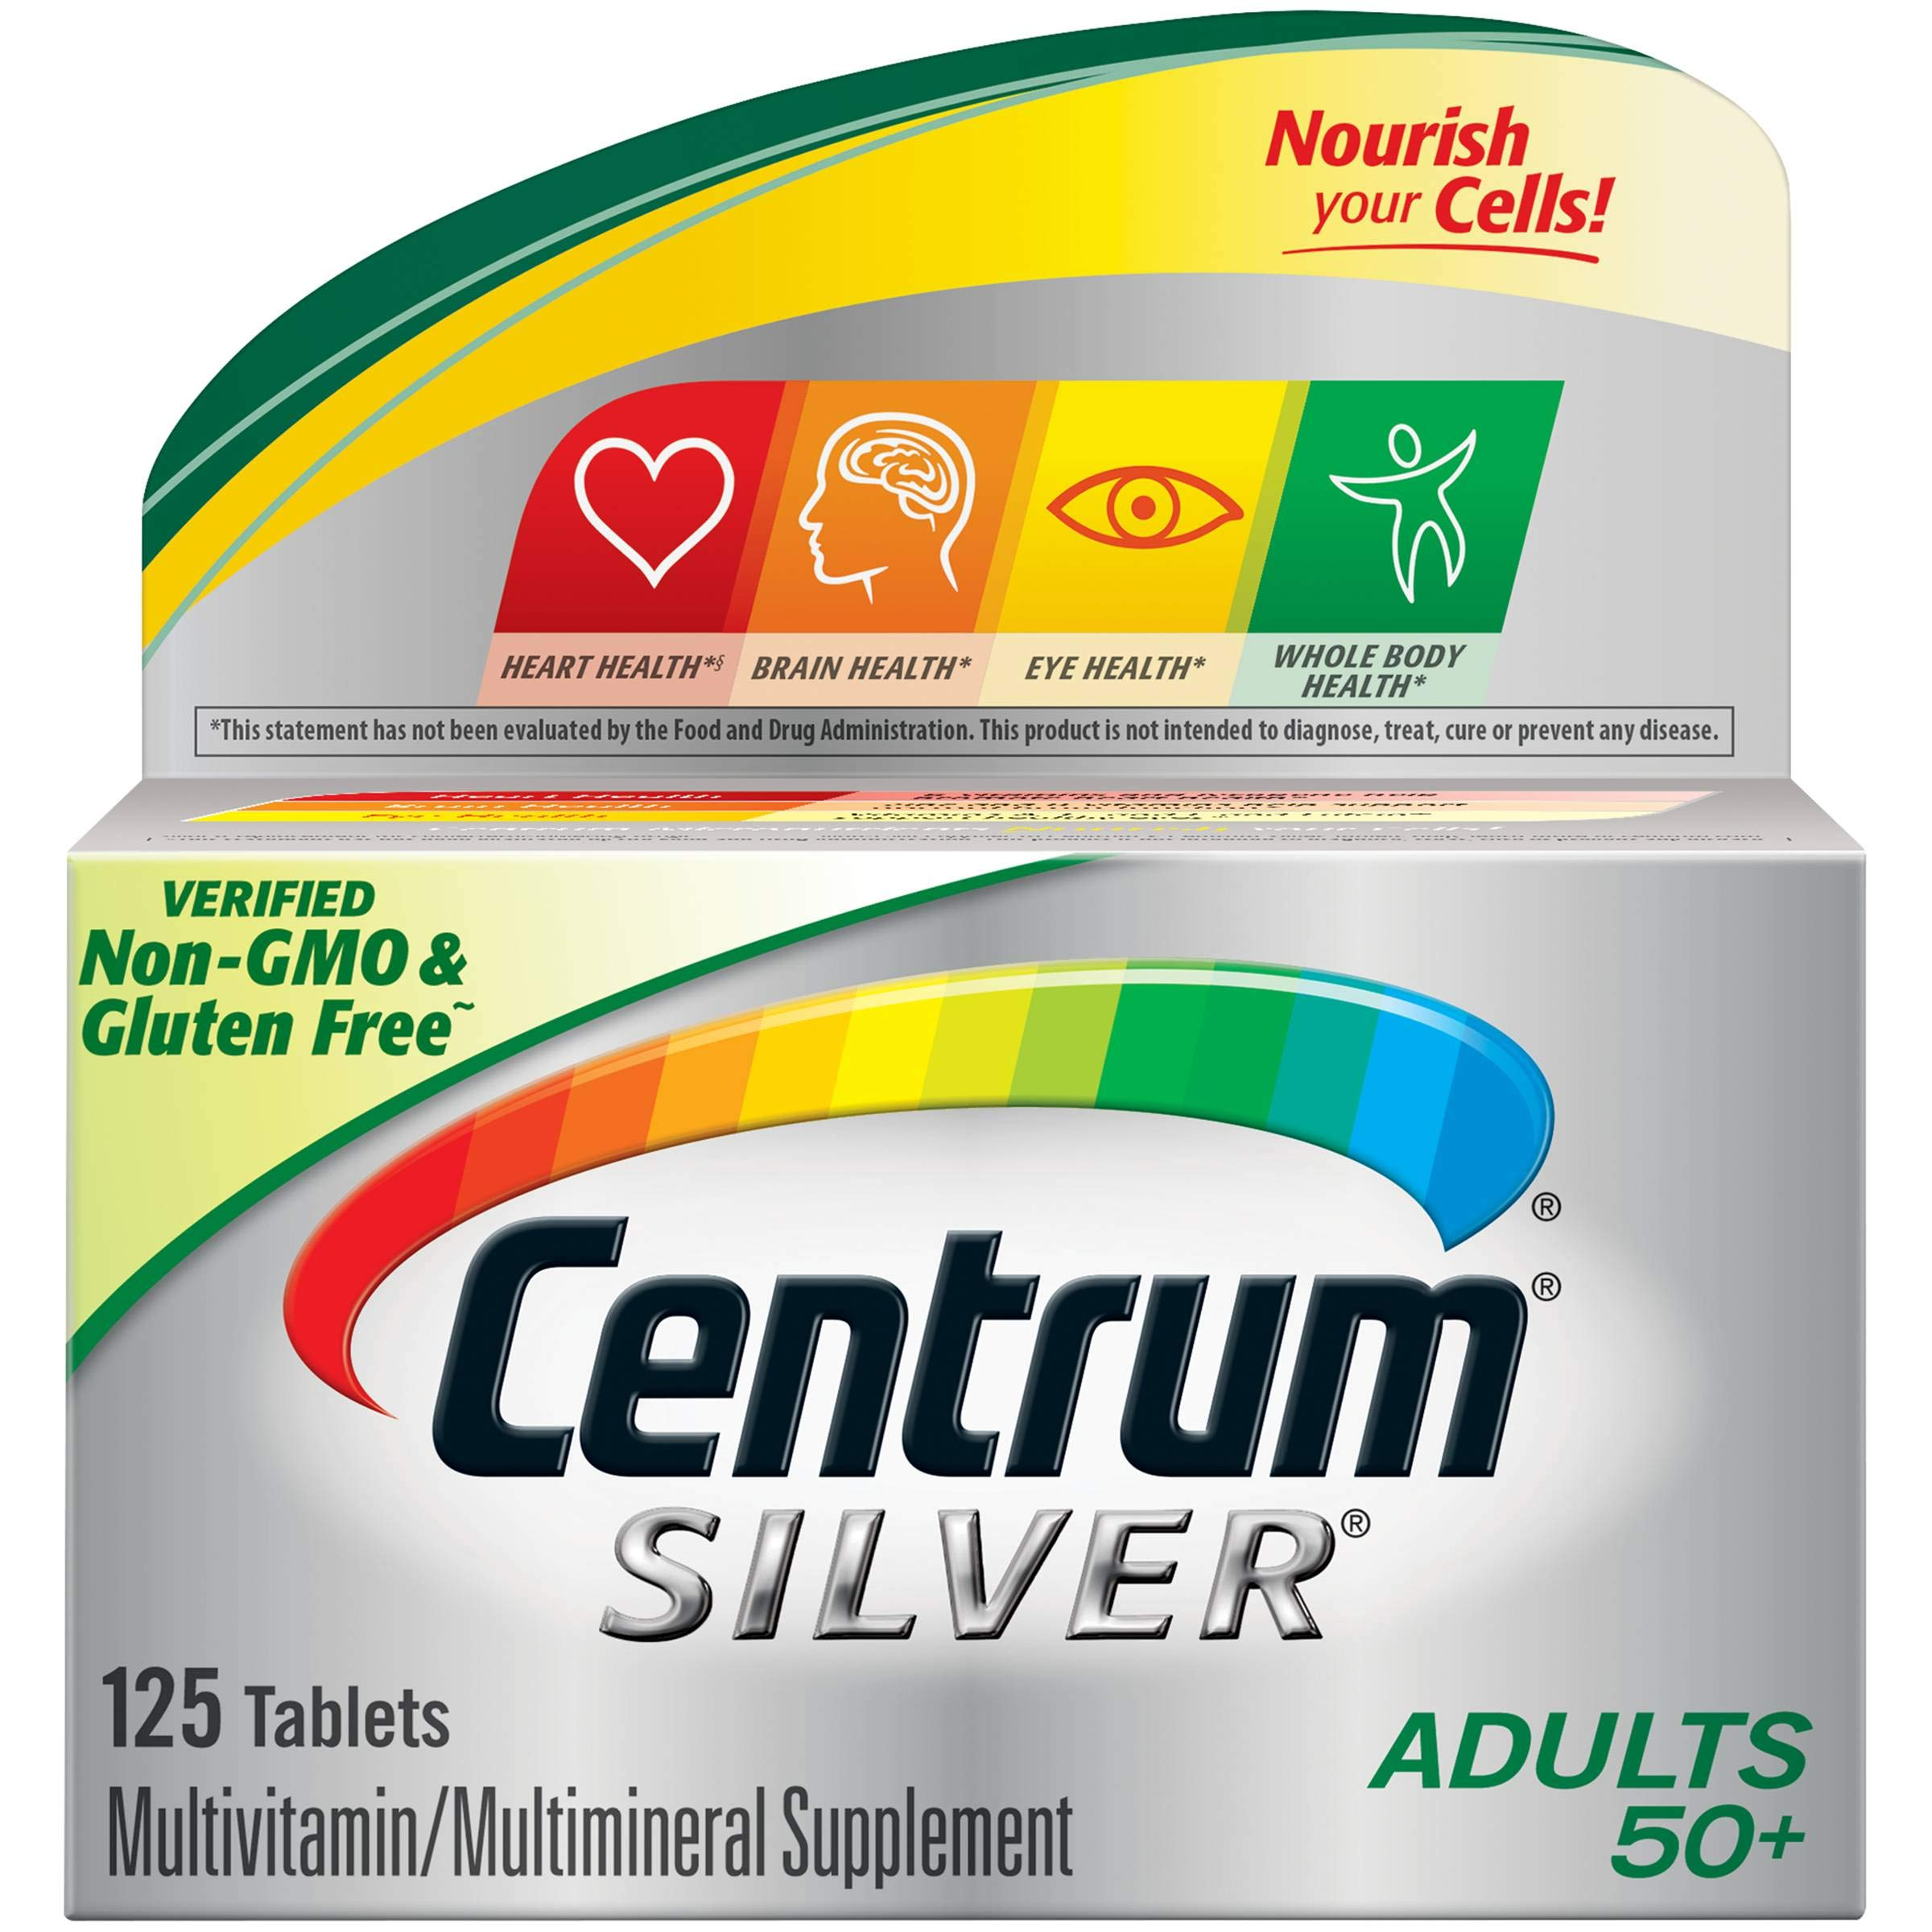 Centrum Silver Multivitamin for Adults 50 Plus, Multivitamin/Multimineral Supplement with Vitamin D3, B Vitamins, Calcium and Antioxidants - 125 Count